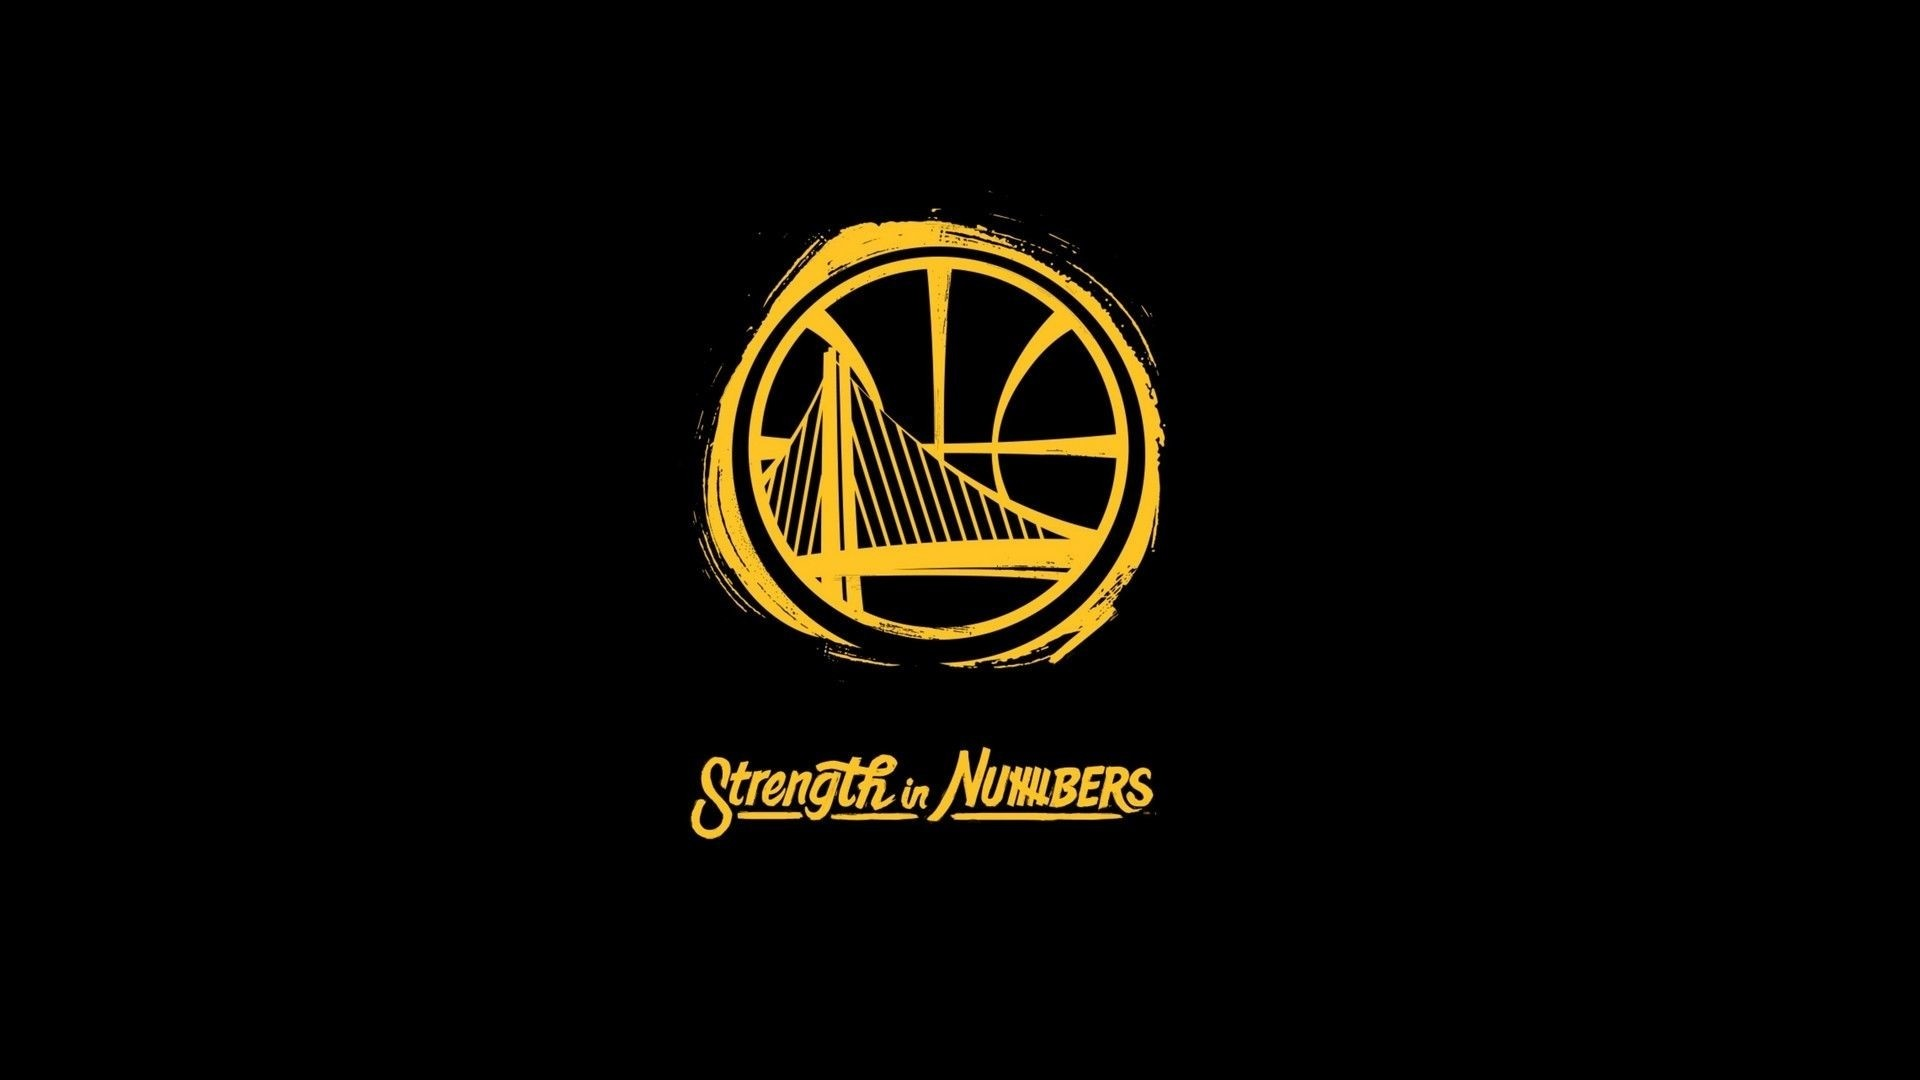 Golden State Warriors a wallpaper